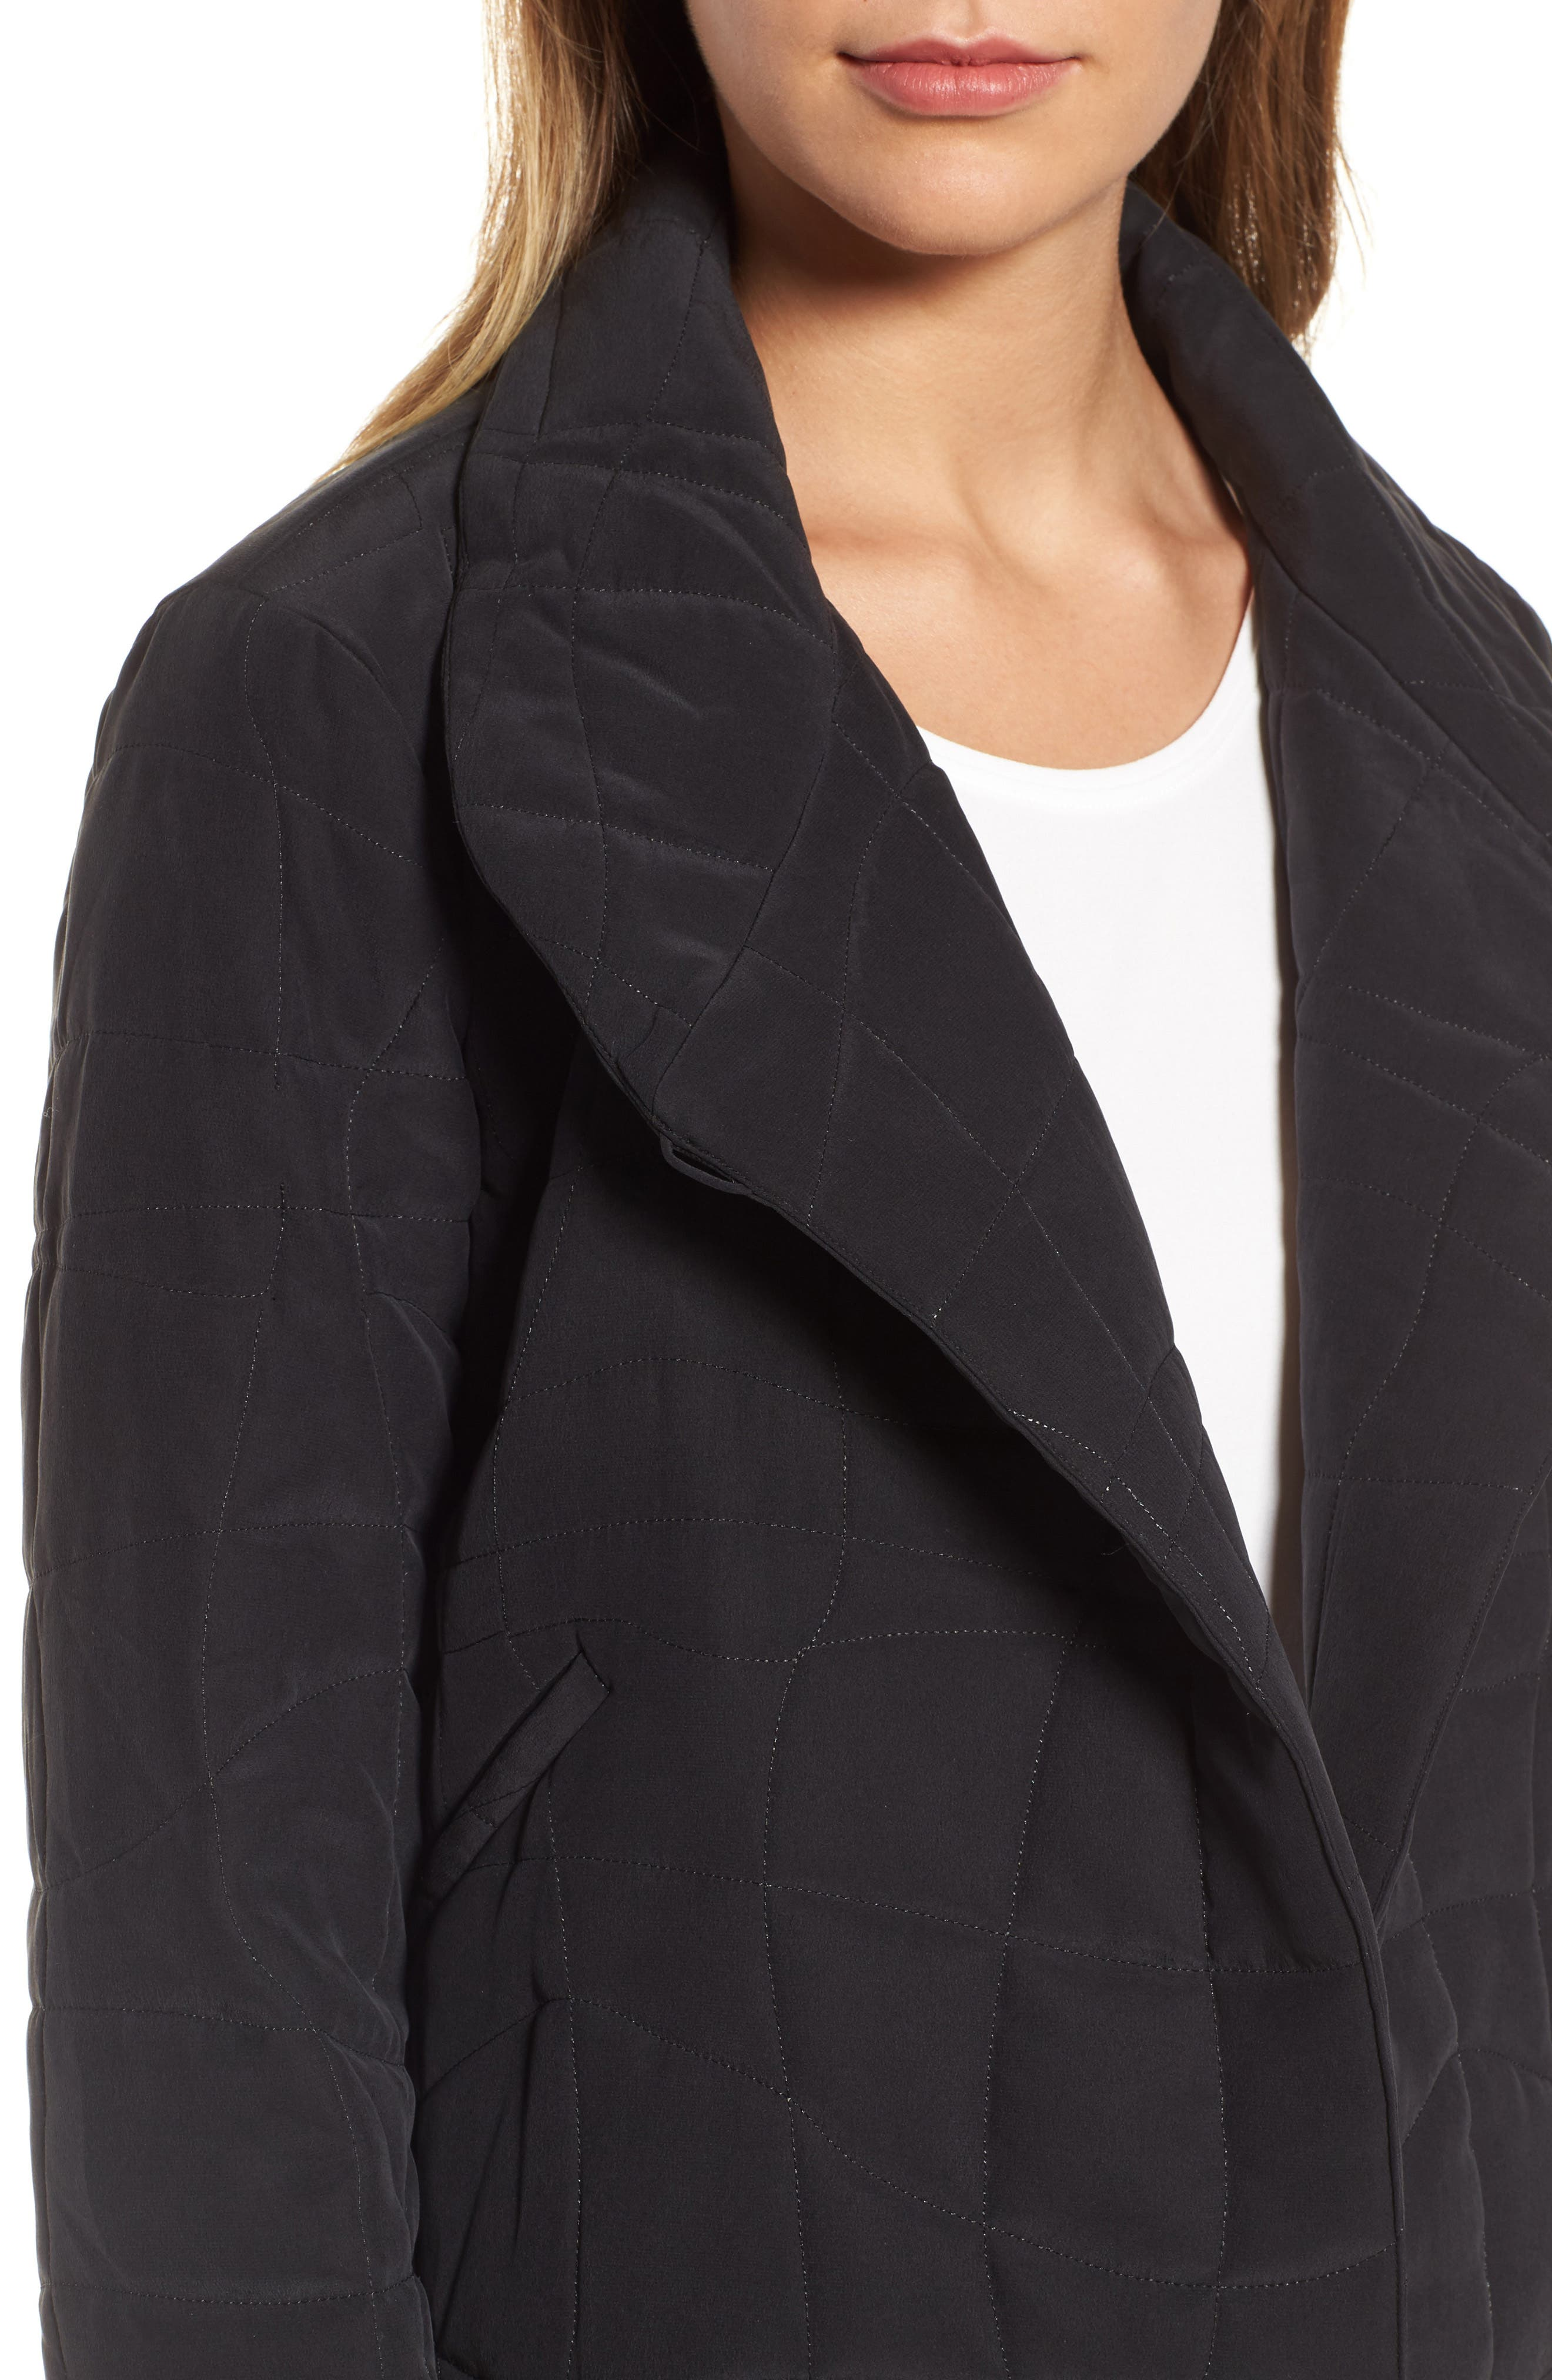 Quilted Silk Crop Jacket,                             Alternate thumbnail 4, color,                             Black